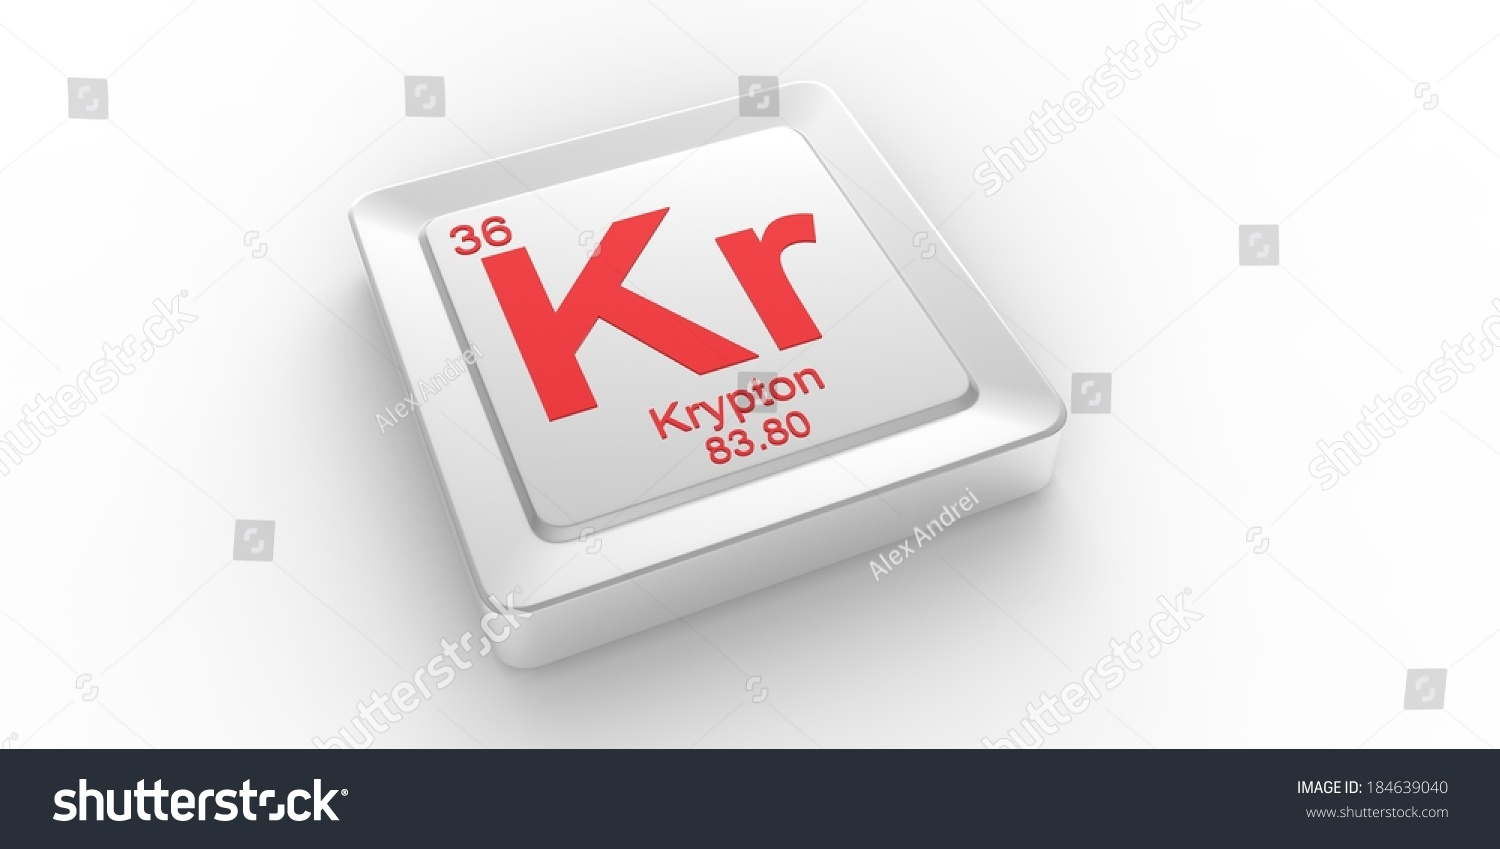 Krypton chemical symbol image collections symbol and sign ideas kr chemical symbol images symbol and sign ideas kr symbol 36 material krypton chemical stock illustration buycottarizona